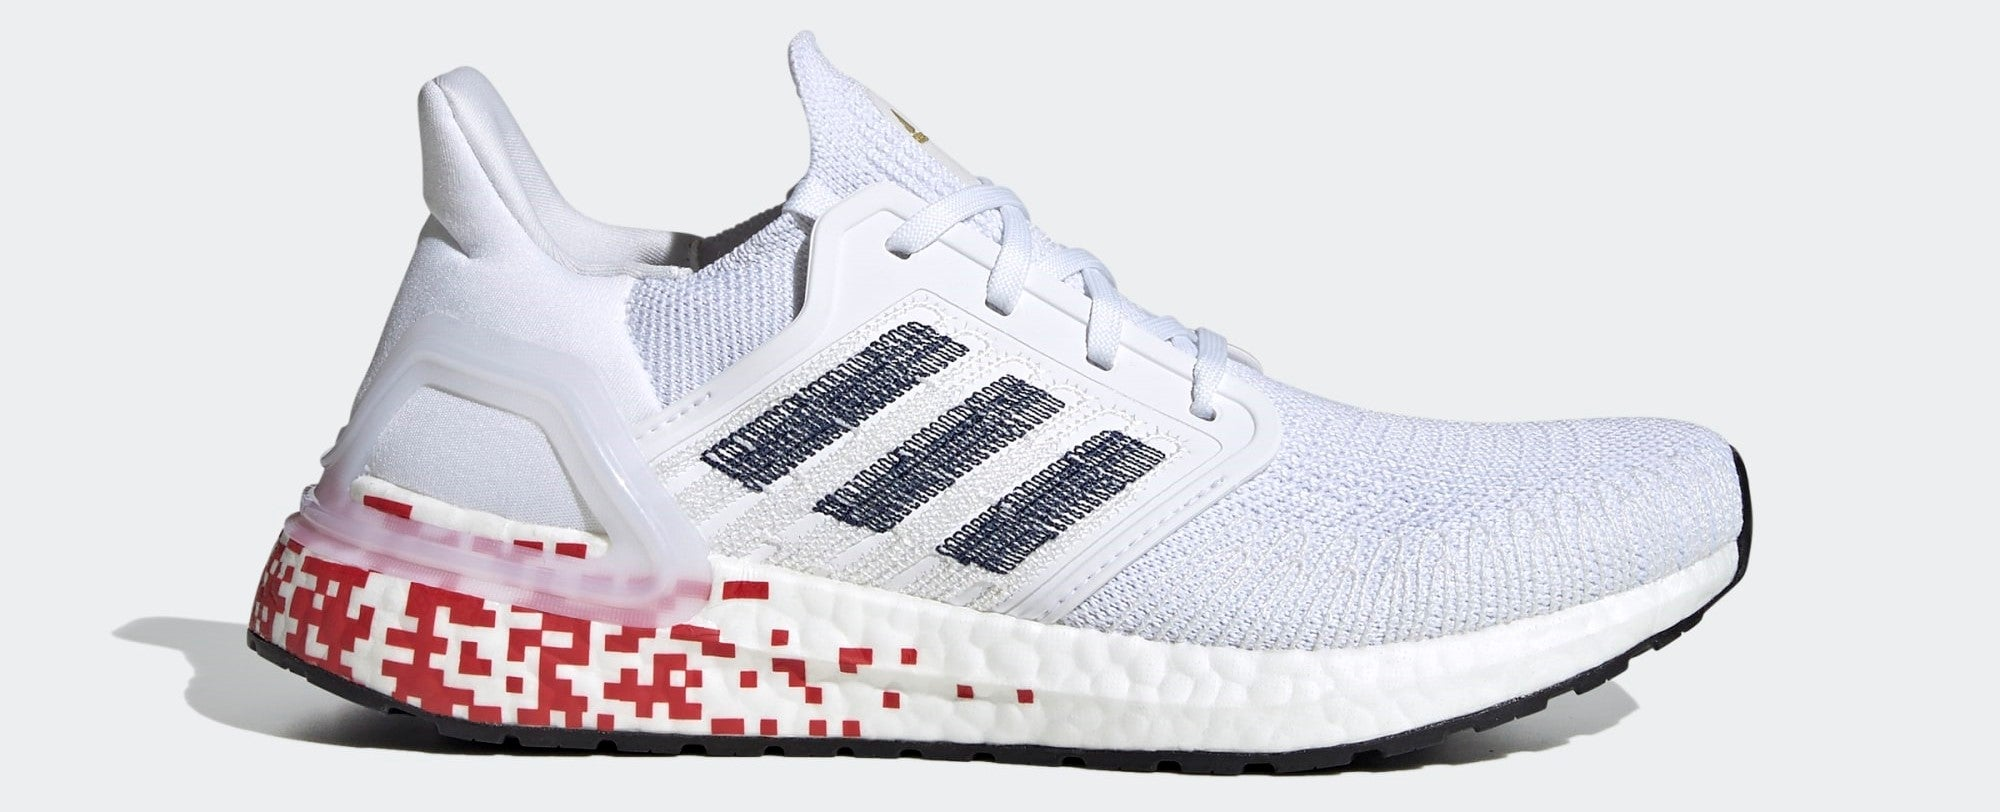 All-white running shoe with red pixels on back of sole and blue adidas logo